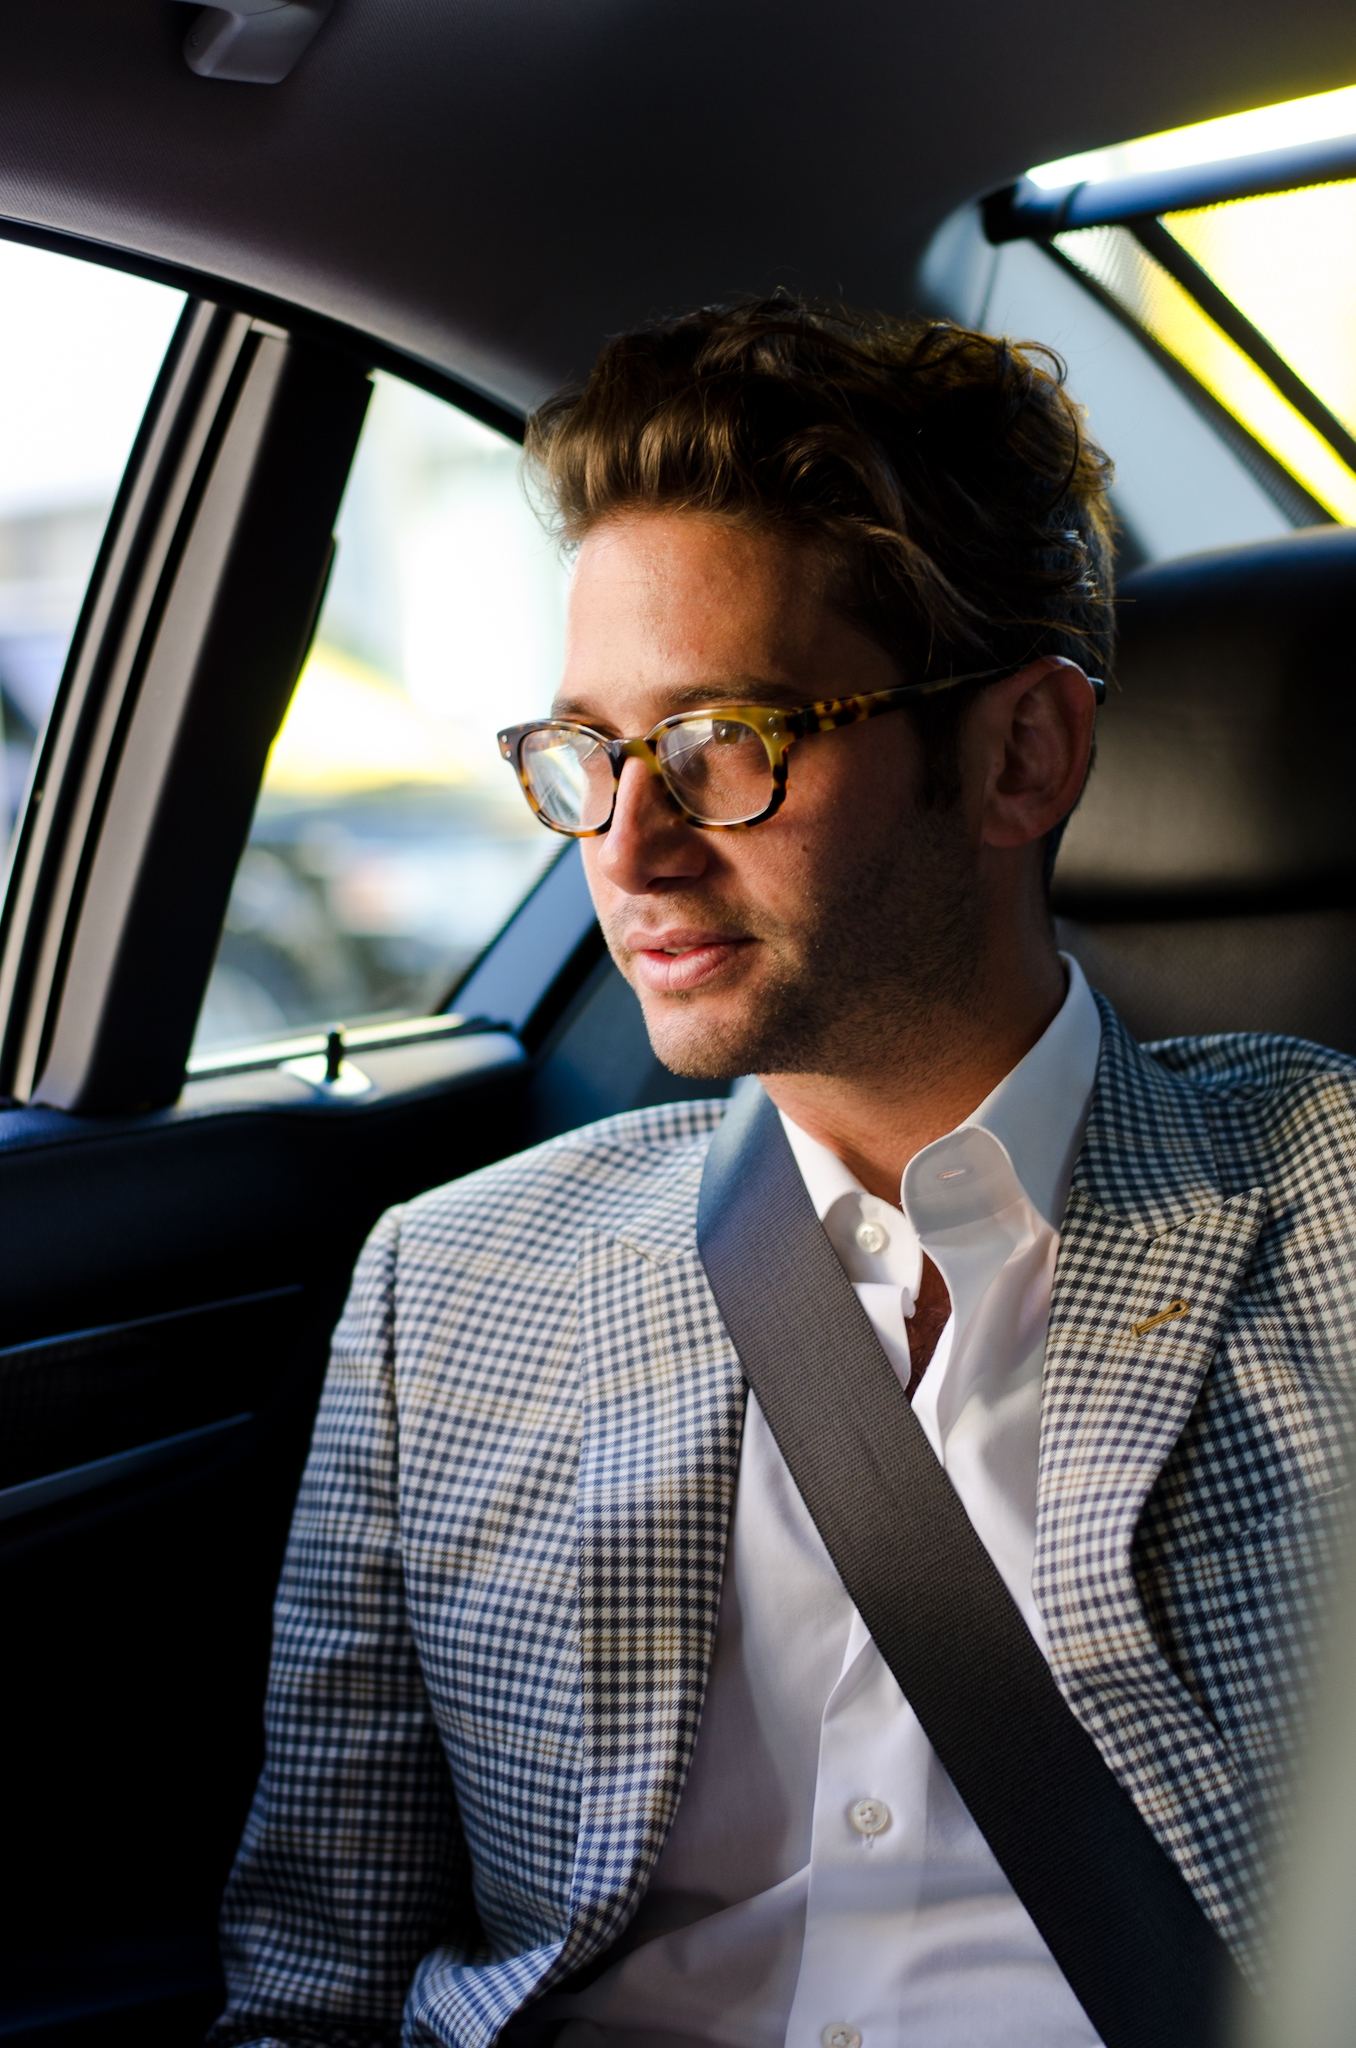 Uberlux For Realtors Luxury Real Estate Agent Josh Flagg Shares His Key To The Sale Uber Blog